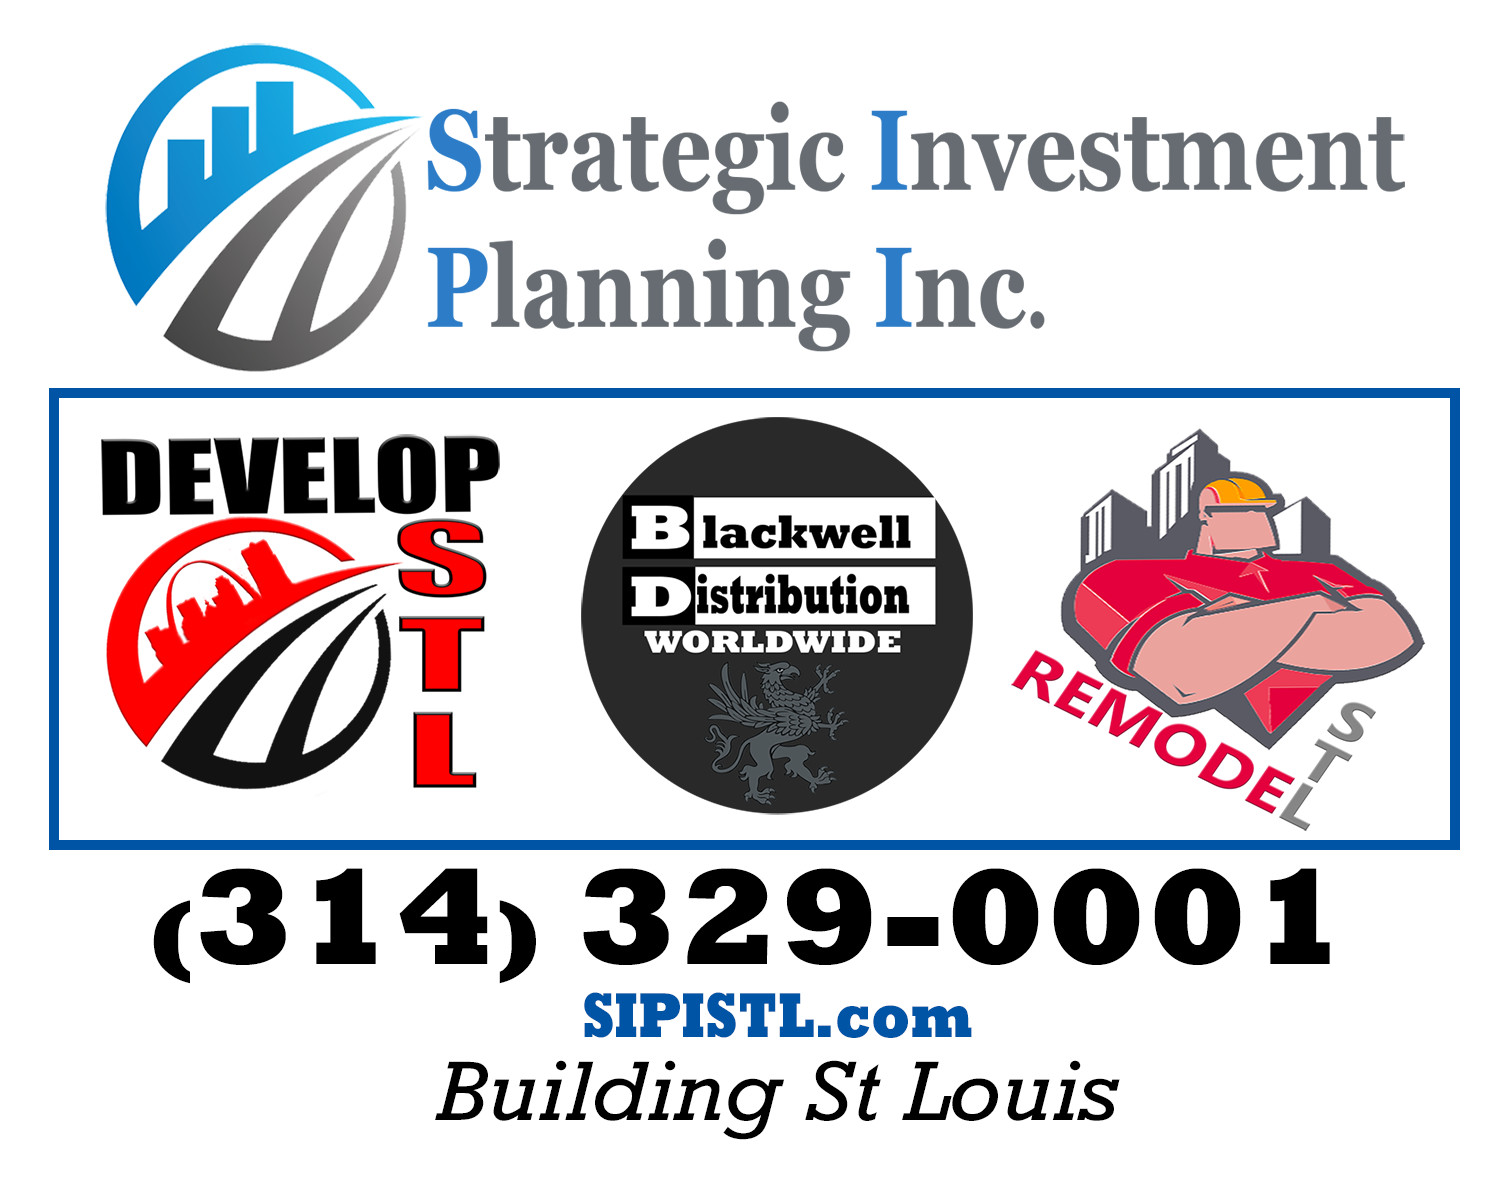 Strategic Investment Planning Inc